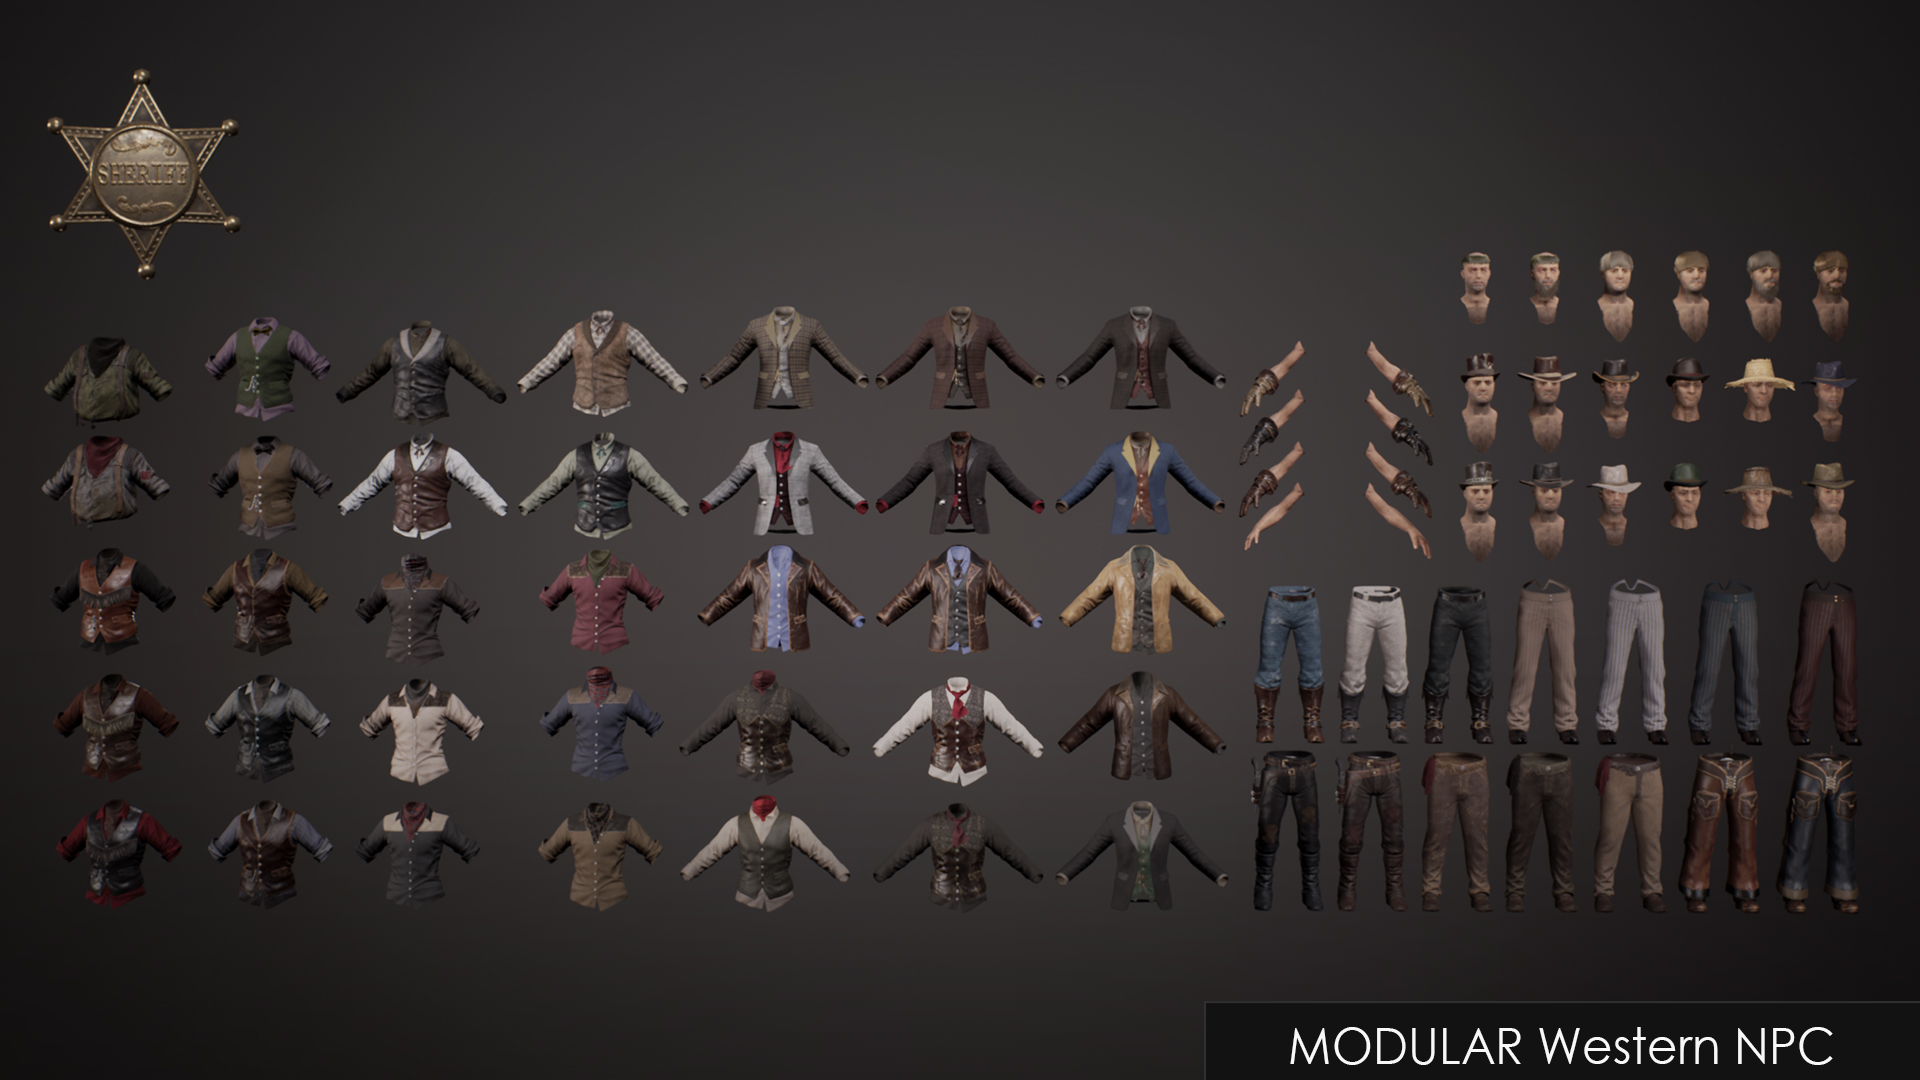 Western NPC by polyphoria in Characters - UE4 Marketplace